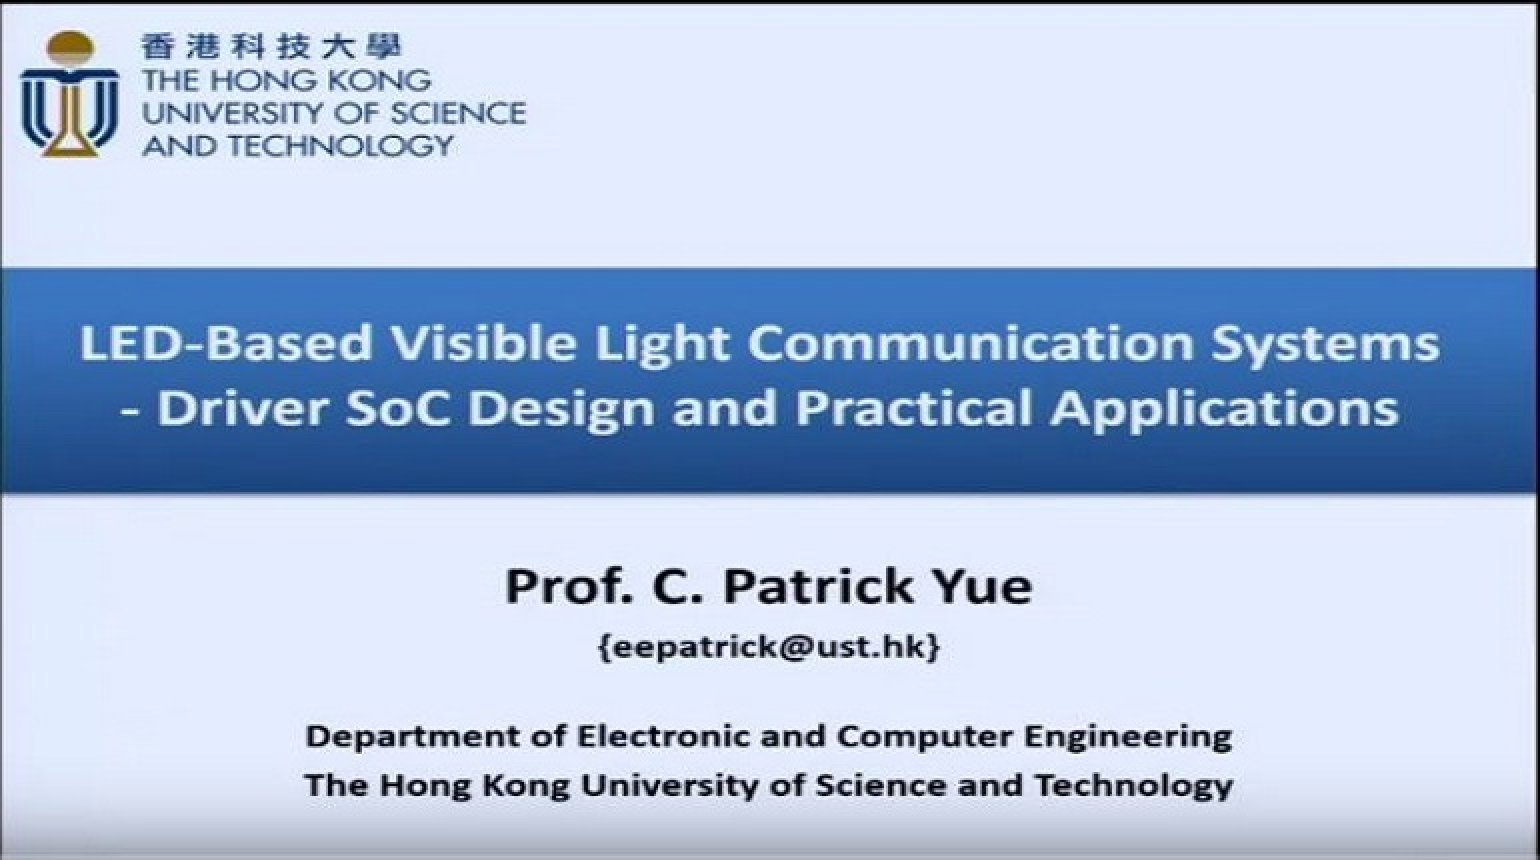 LED-Based Visible Light Communication Systems Driver SoC Design and Practical Applications Video